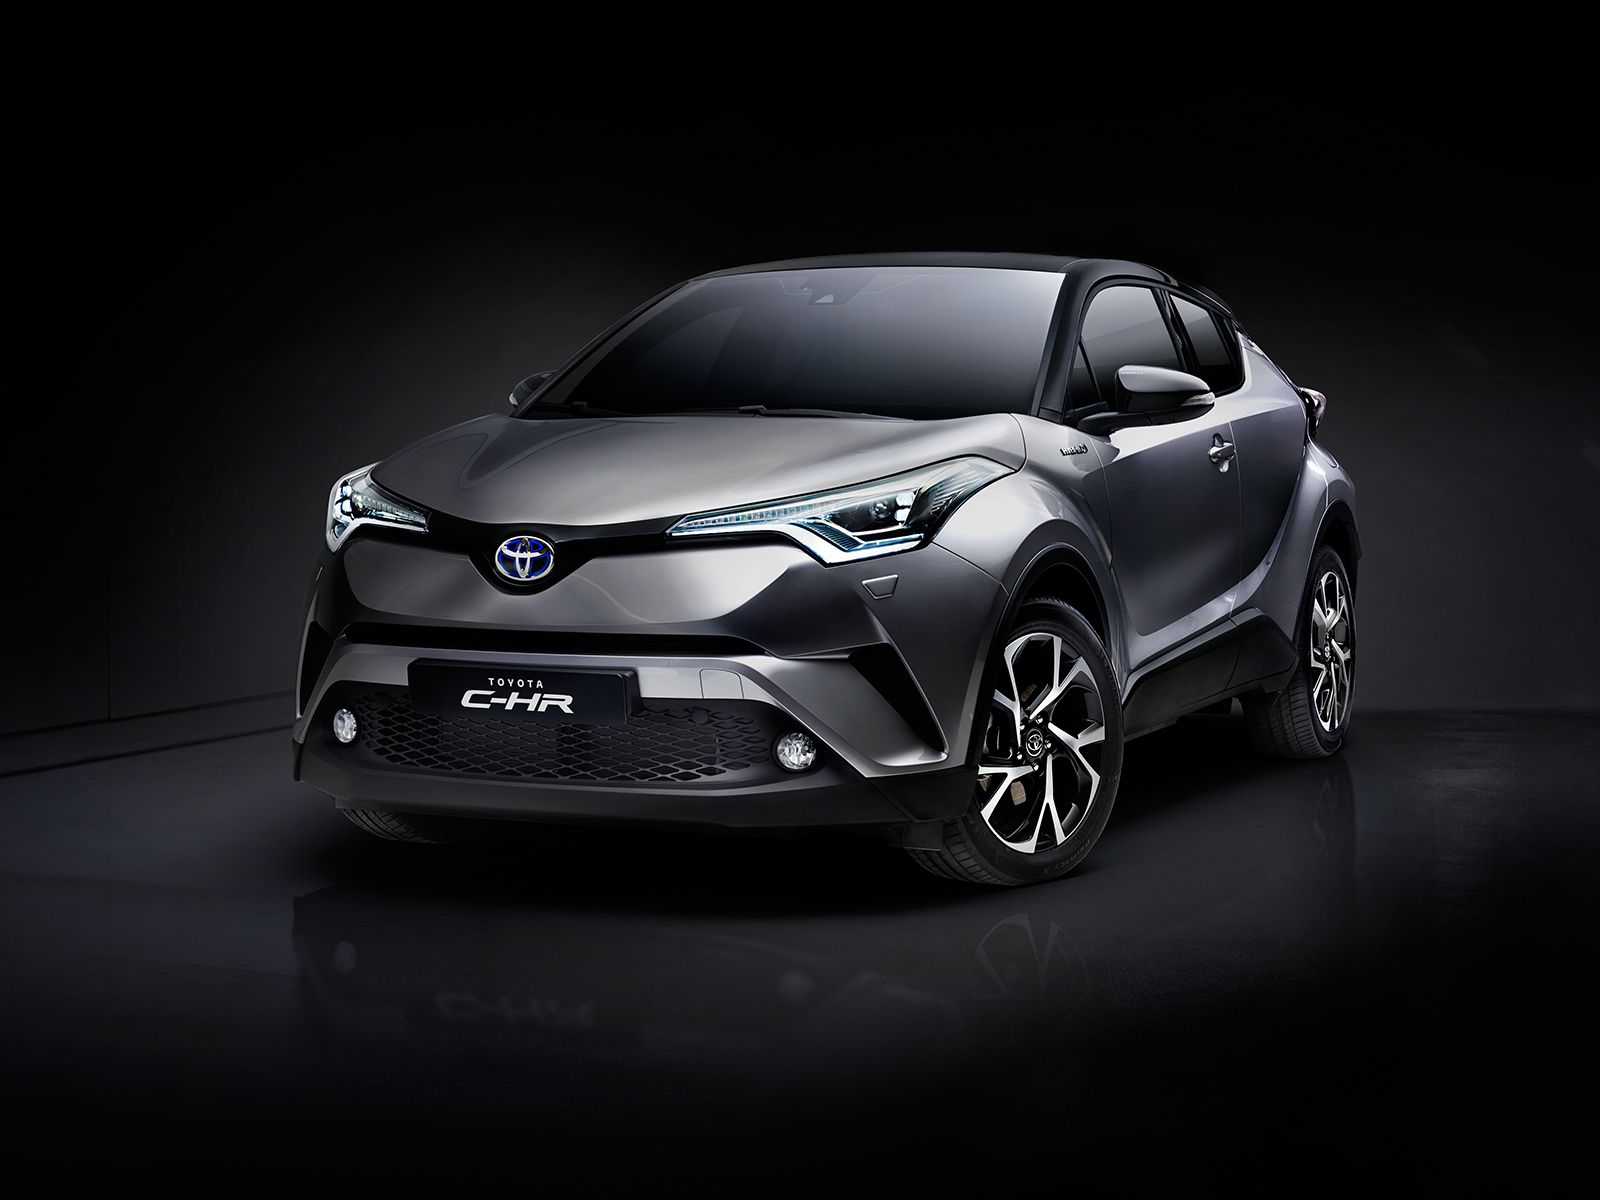 new toyota c hr coupe high rider hybrid crossover c hr pinterest hybrid crossover toyota. Black Bedroom Furniture Sets. Home Design Ideas